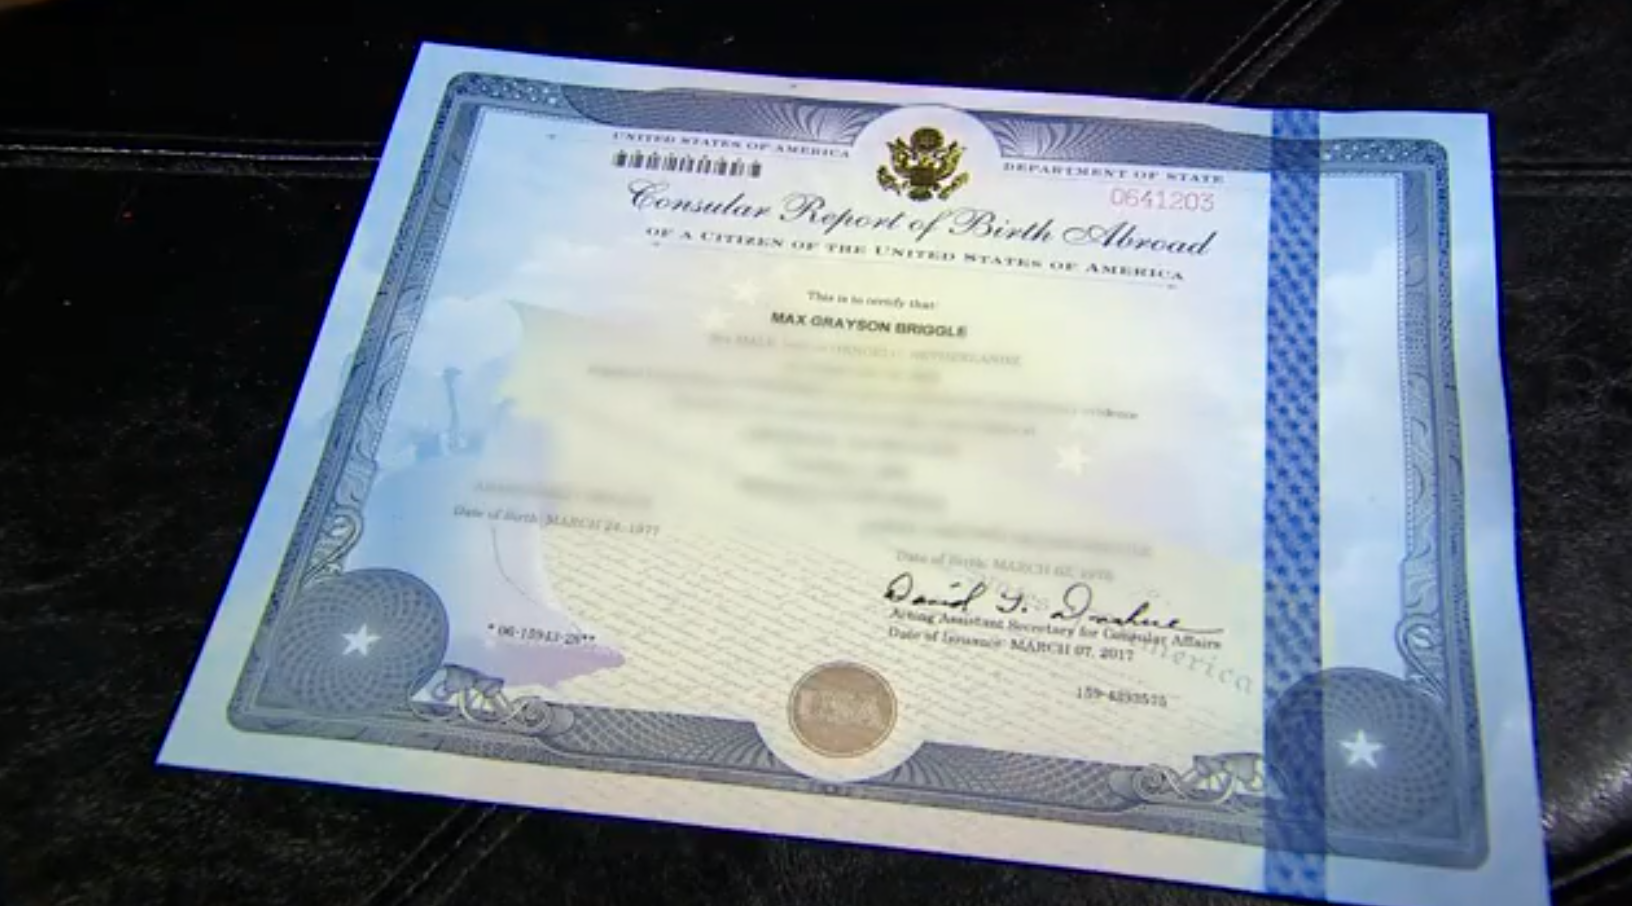 Transgender denton boy gets new birth certificate wfaa xflitez Image collections